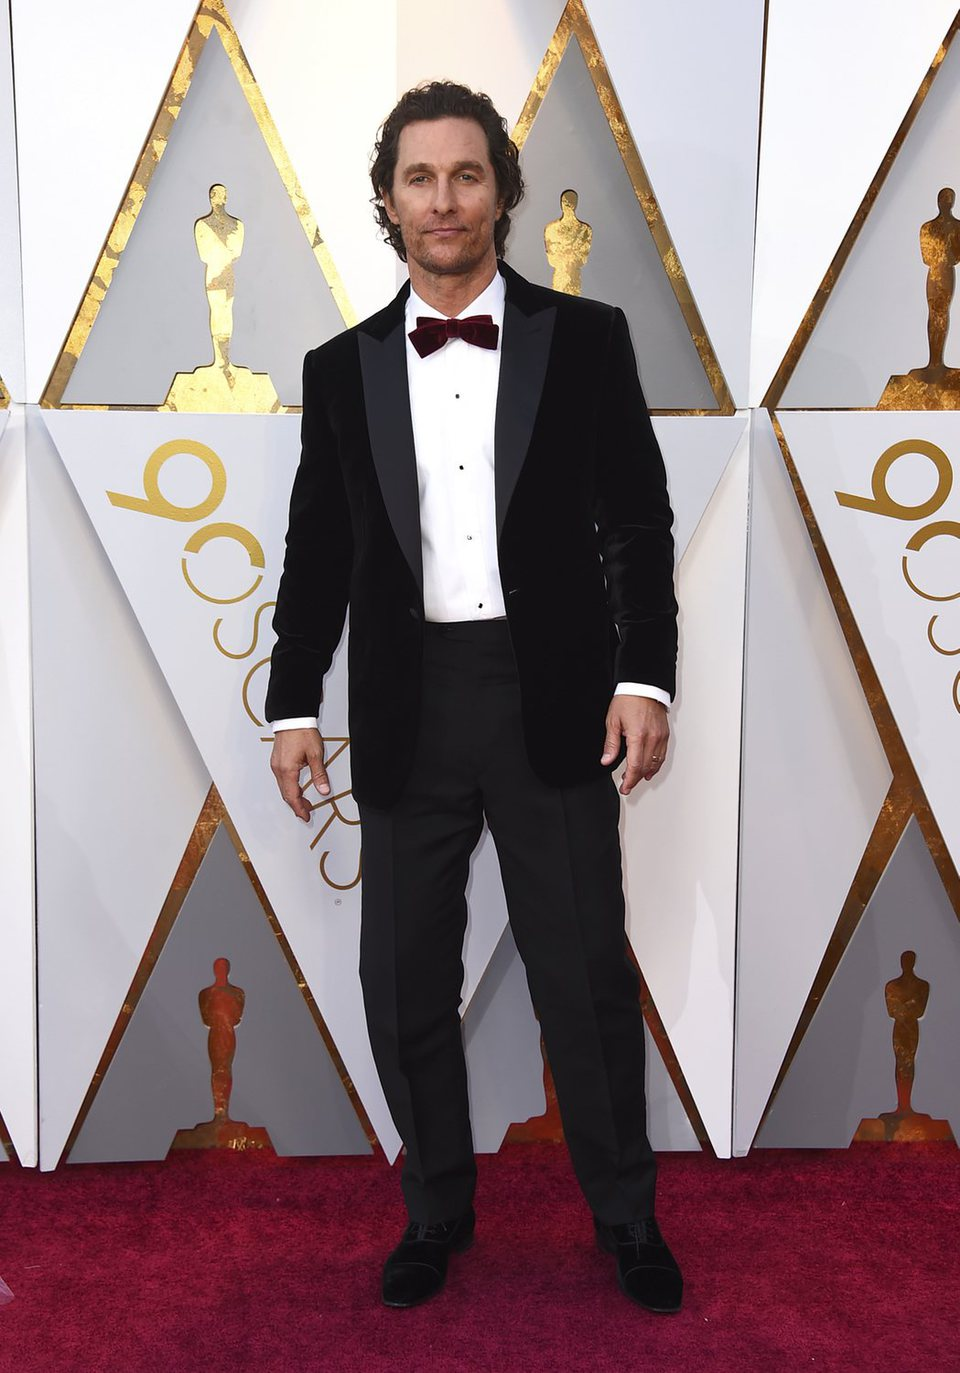 Matthew McConaughey at the red carpet of the Oscars ...